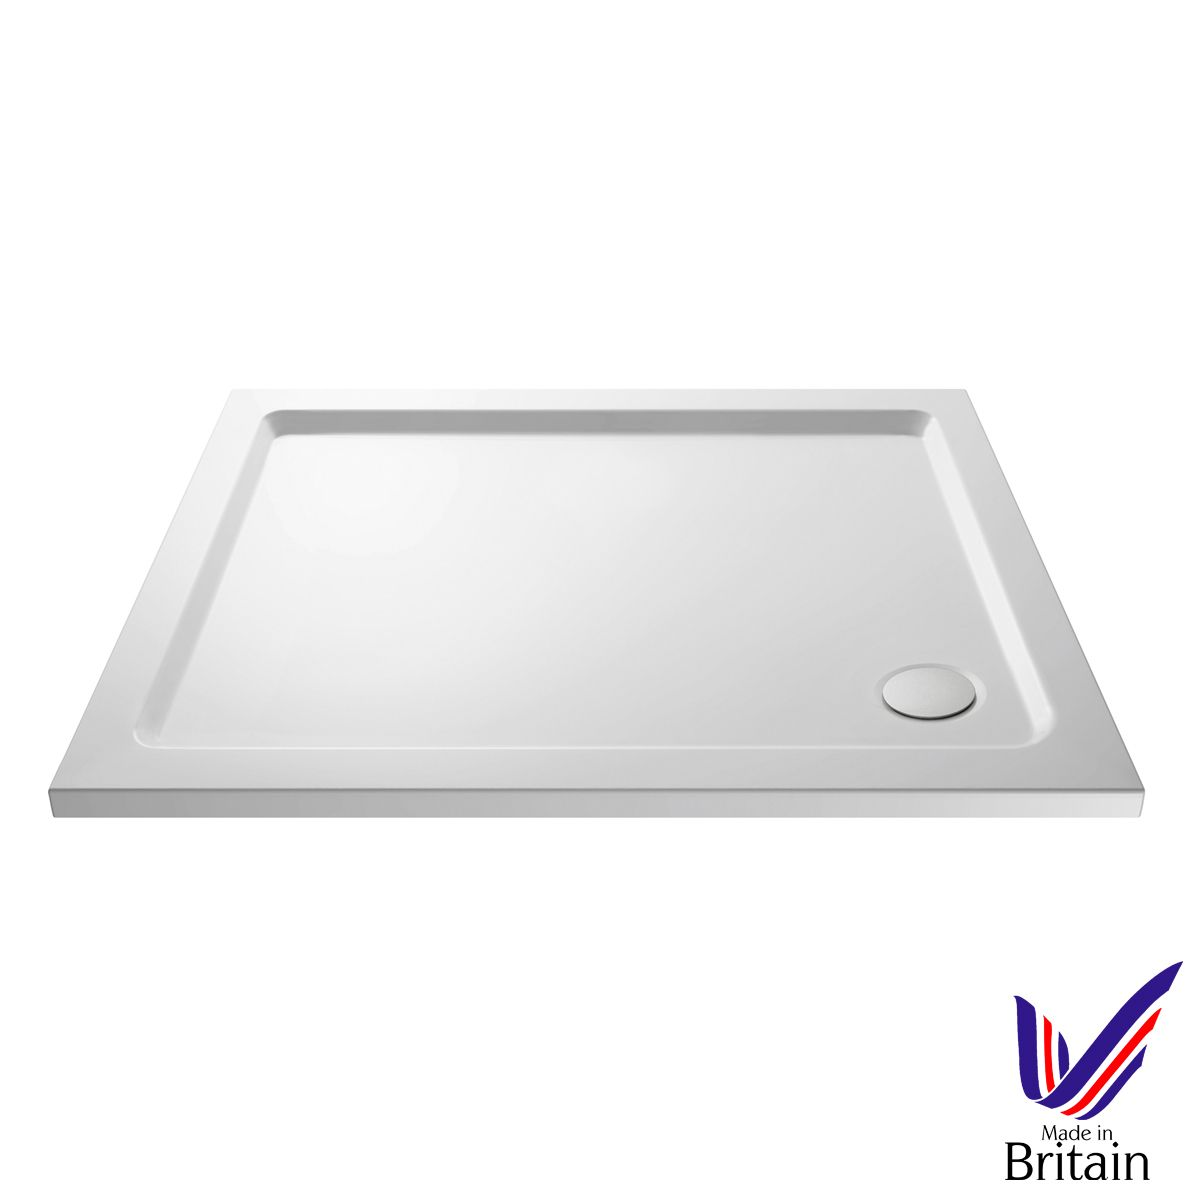 1200 x 800 Shower Tray Rectangular Low Profile by Pearlstone